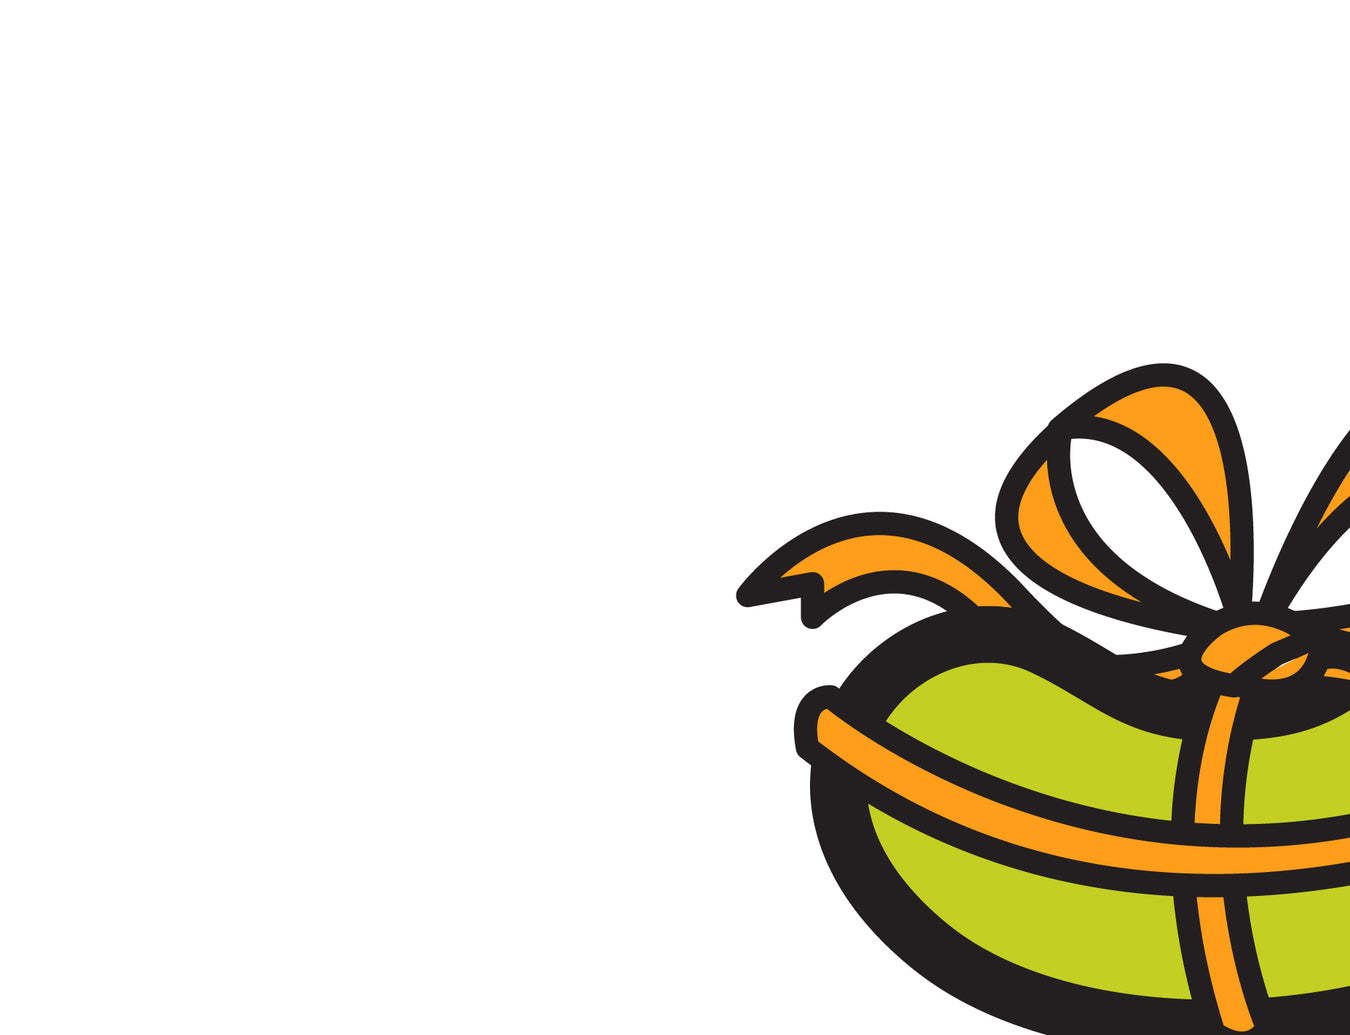 Magic Beans Moola Image - a graphic illustration of a green bean wrapped in an orange ribbon